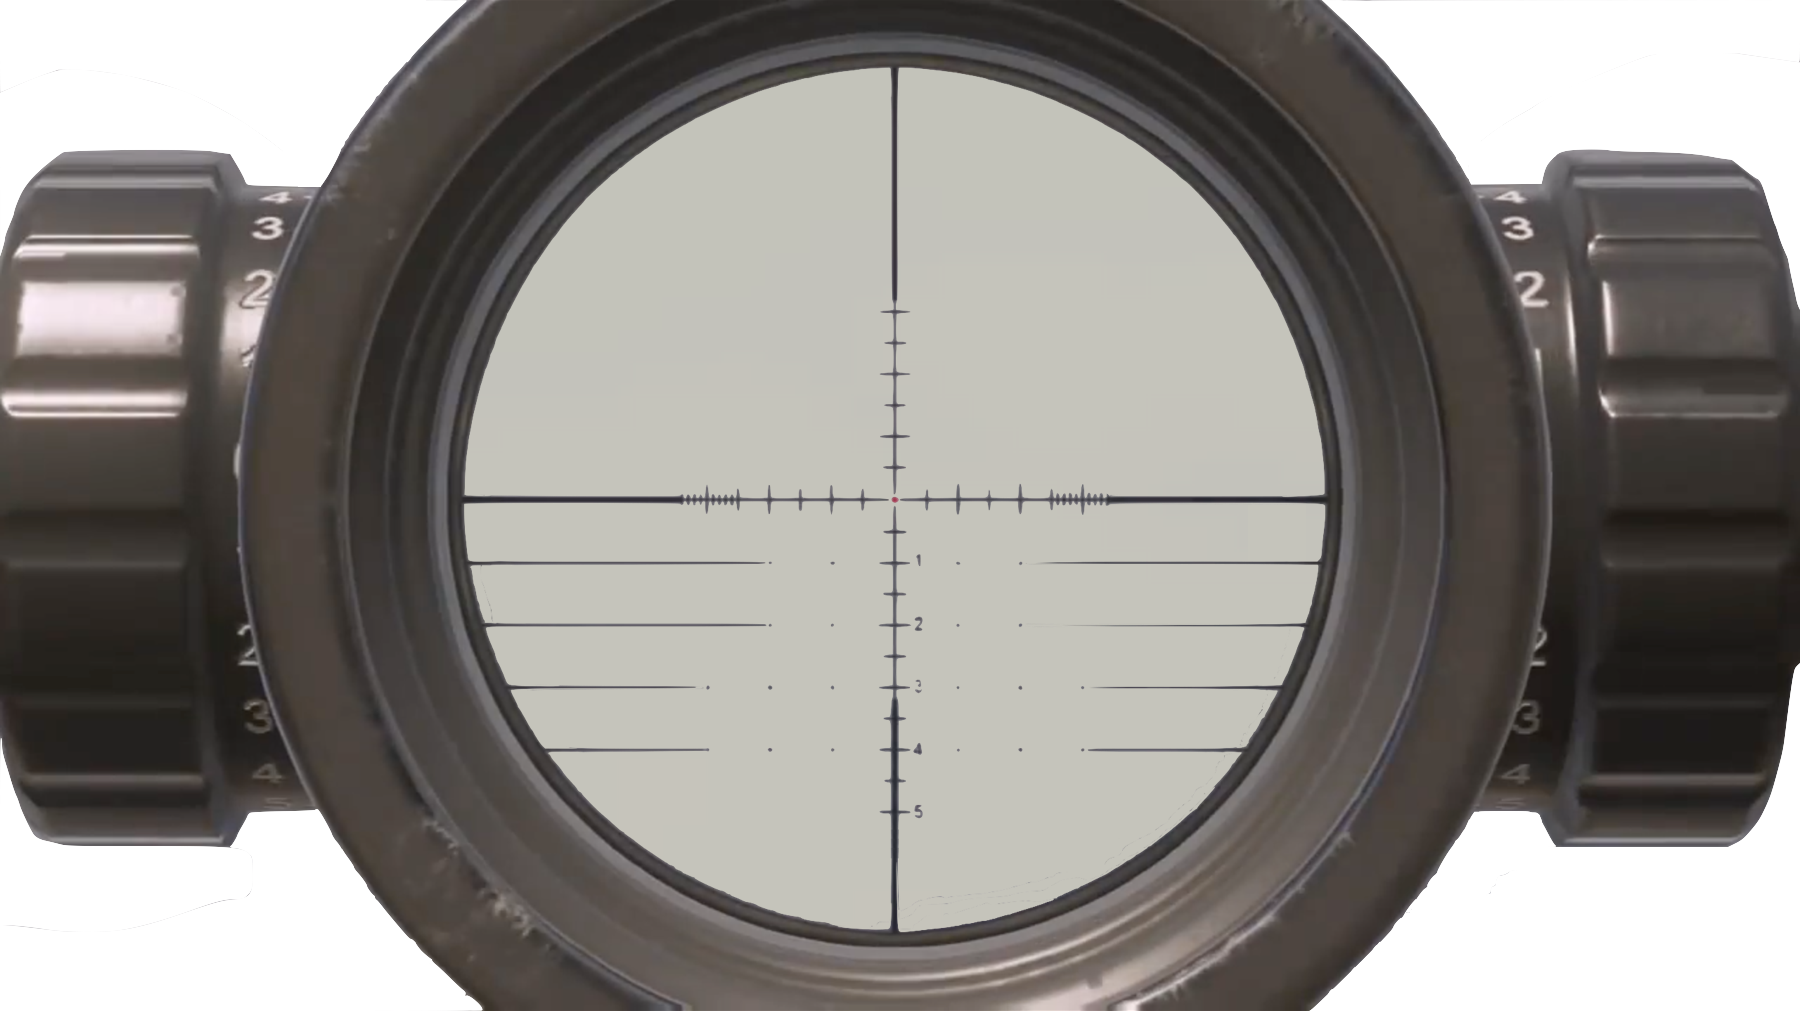 Pubg Png Transparent Images Pictures Photos: Image - S-Tac Aggressor Scope MWR.png